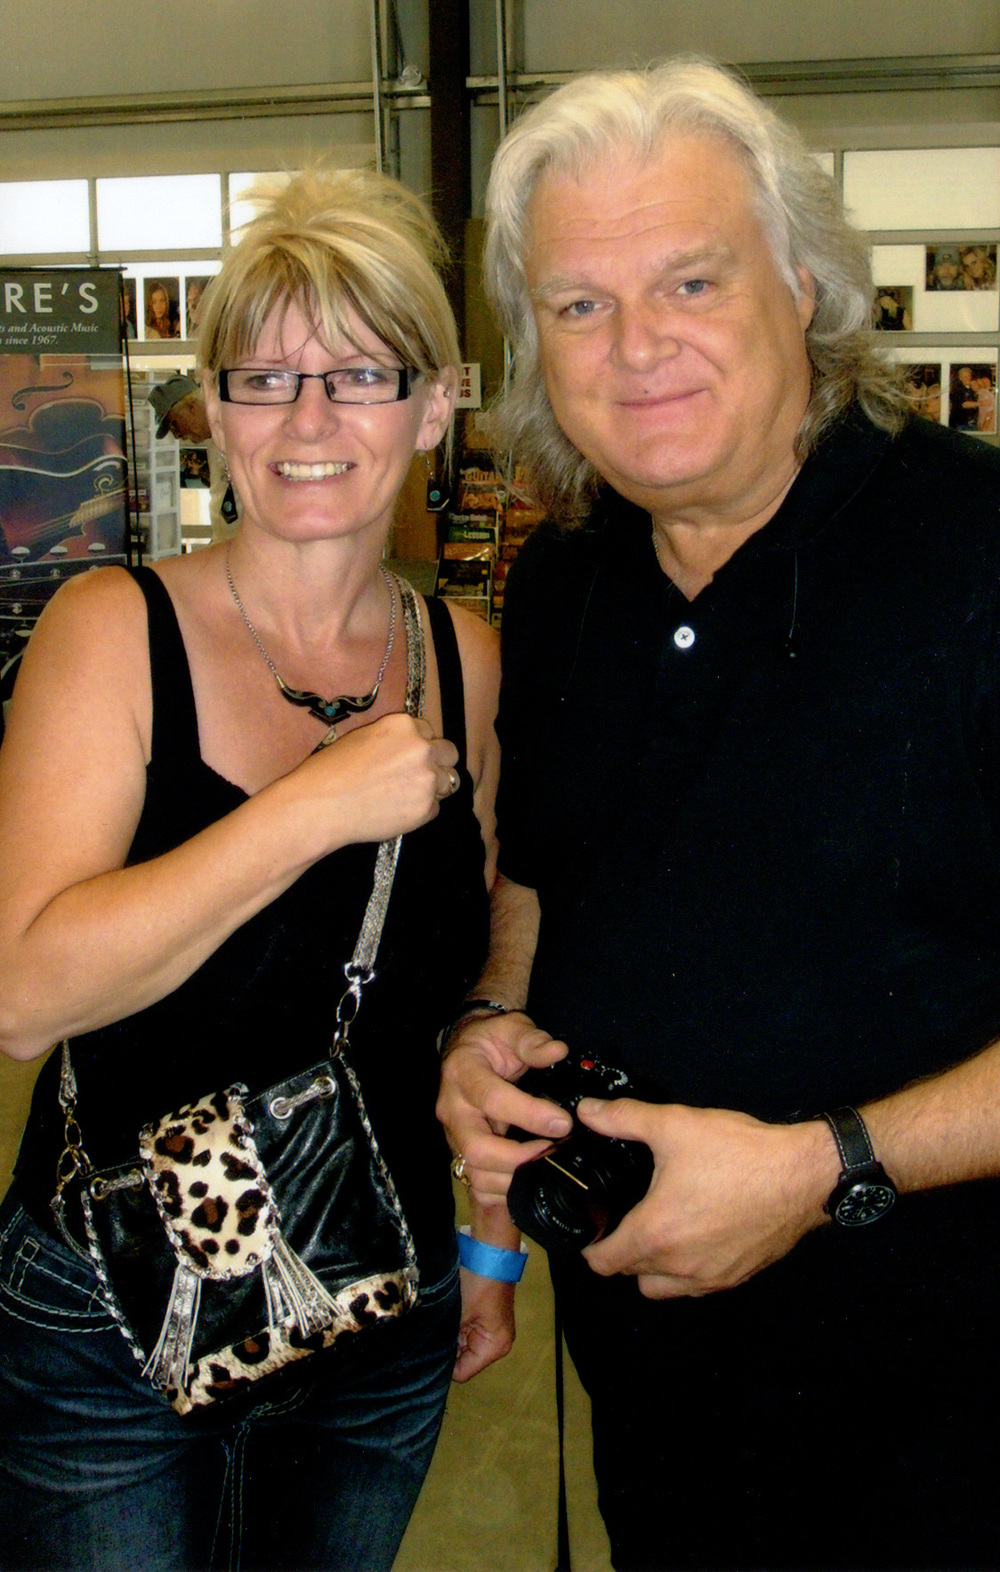 Ricky Skaggs with a fan